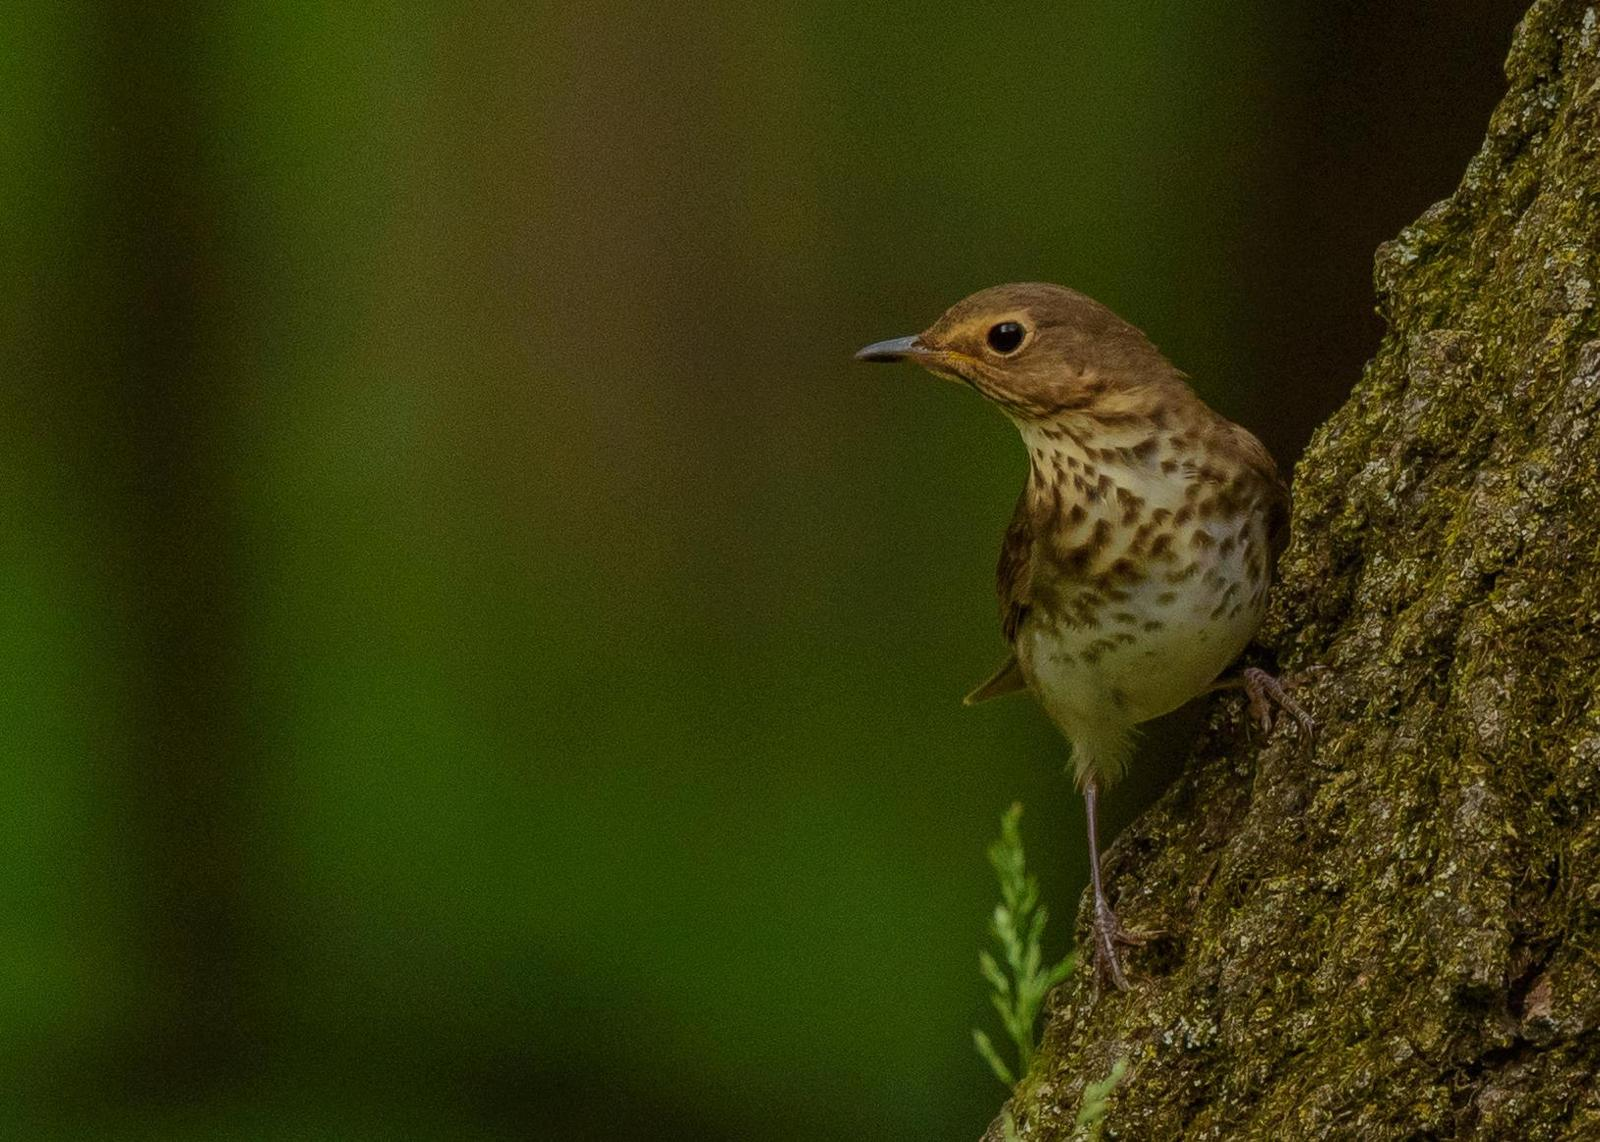 Swainson's Thrush Photo by Keshava Mysore